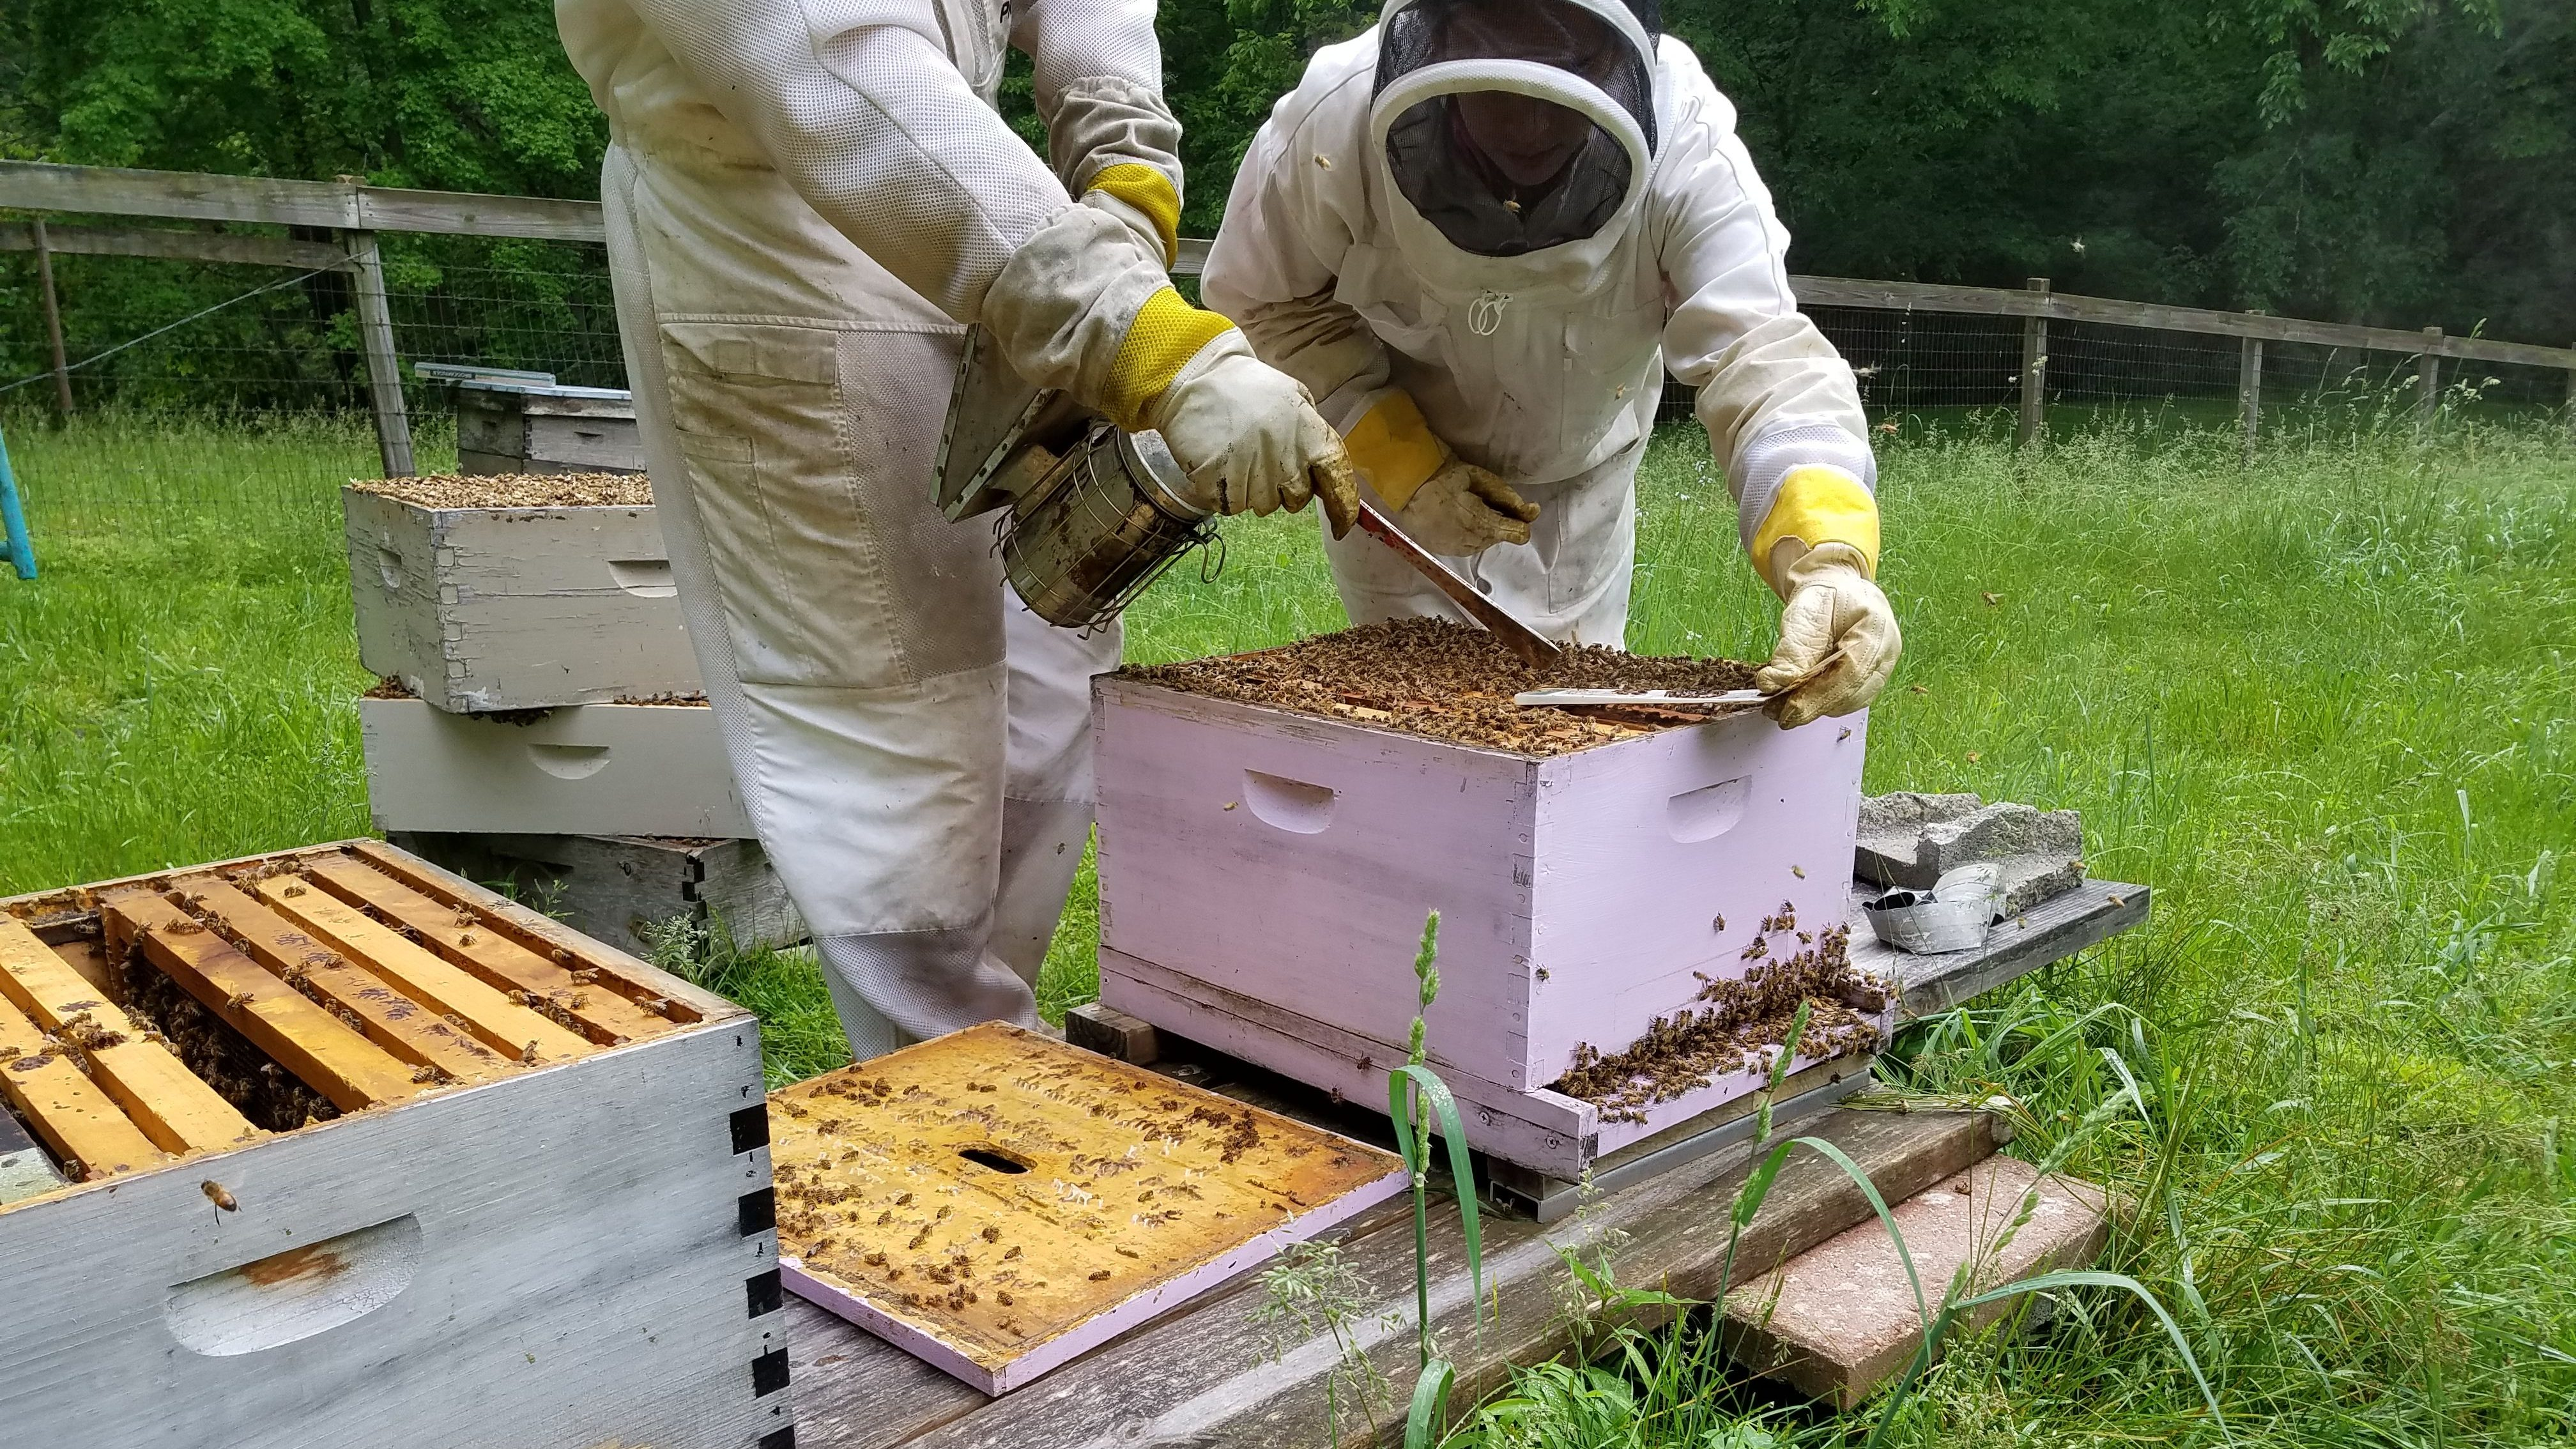 Beekeepers working on keeping their hive safe from thieves.